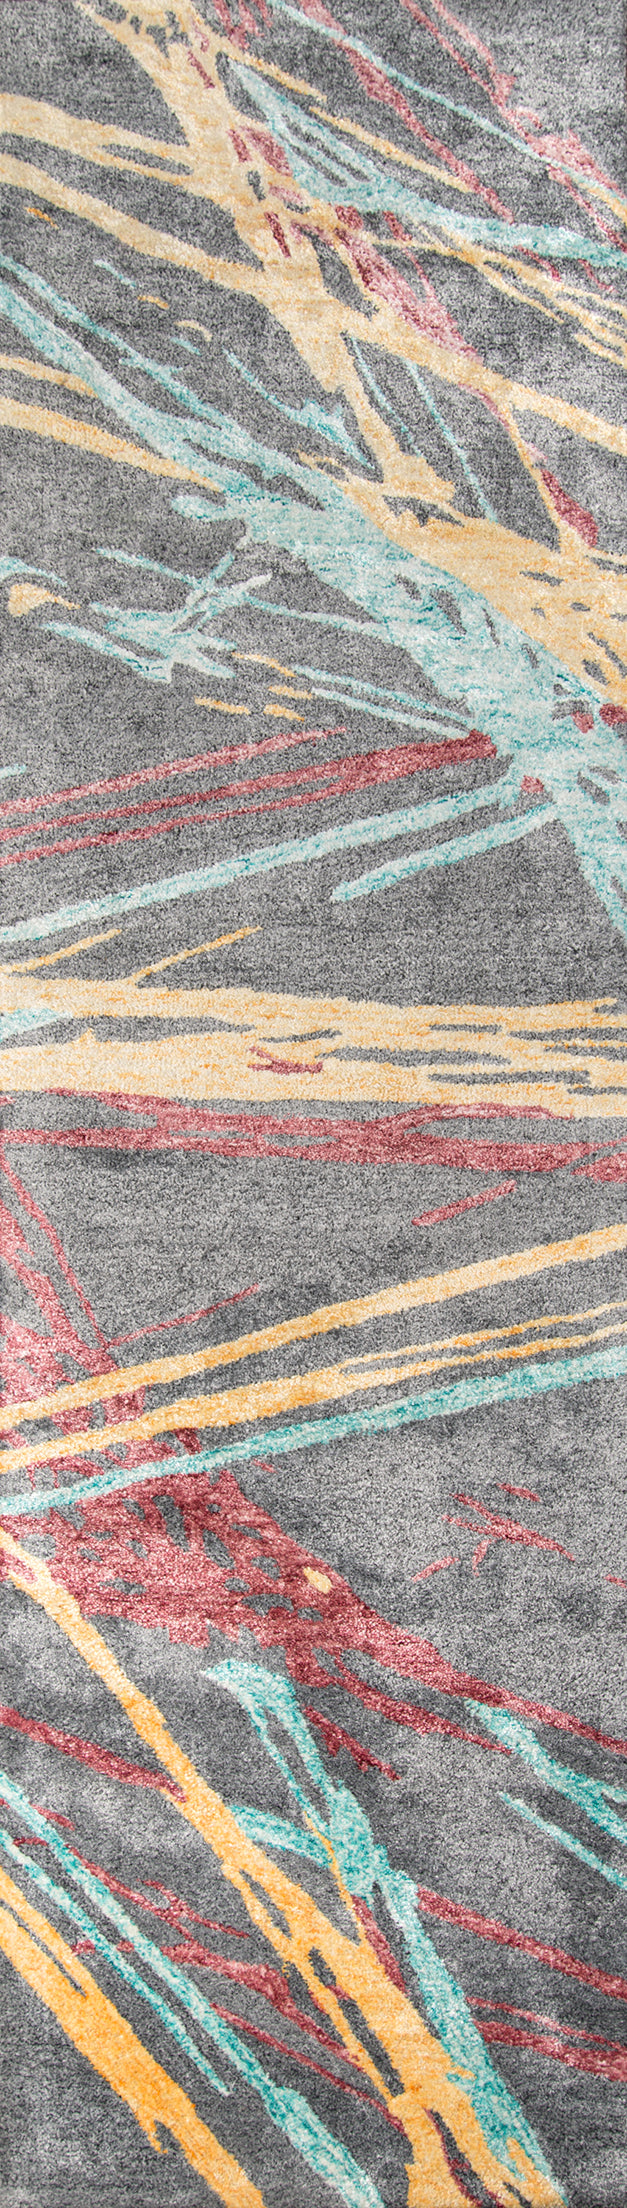 Abstract 80s Style Pink Yellow Blue Gray Rug